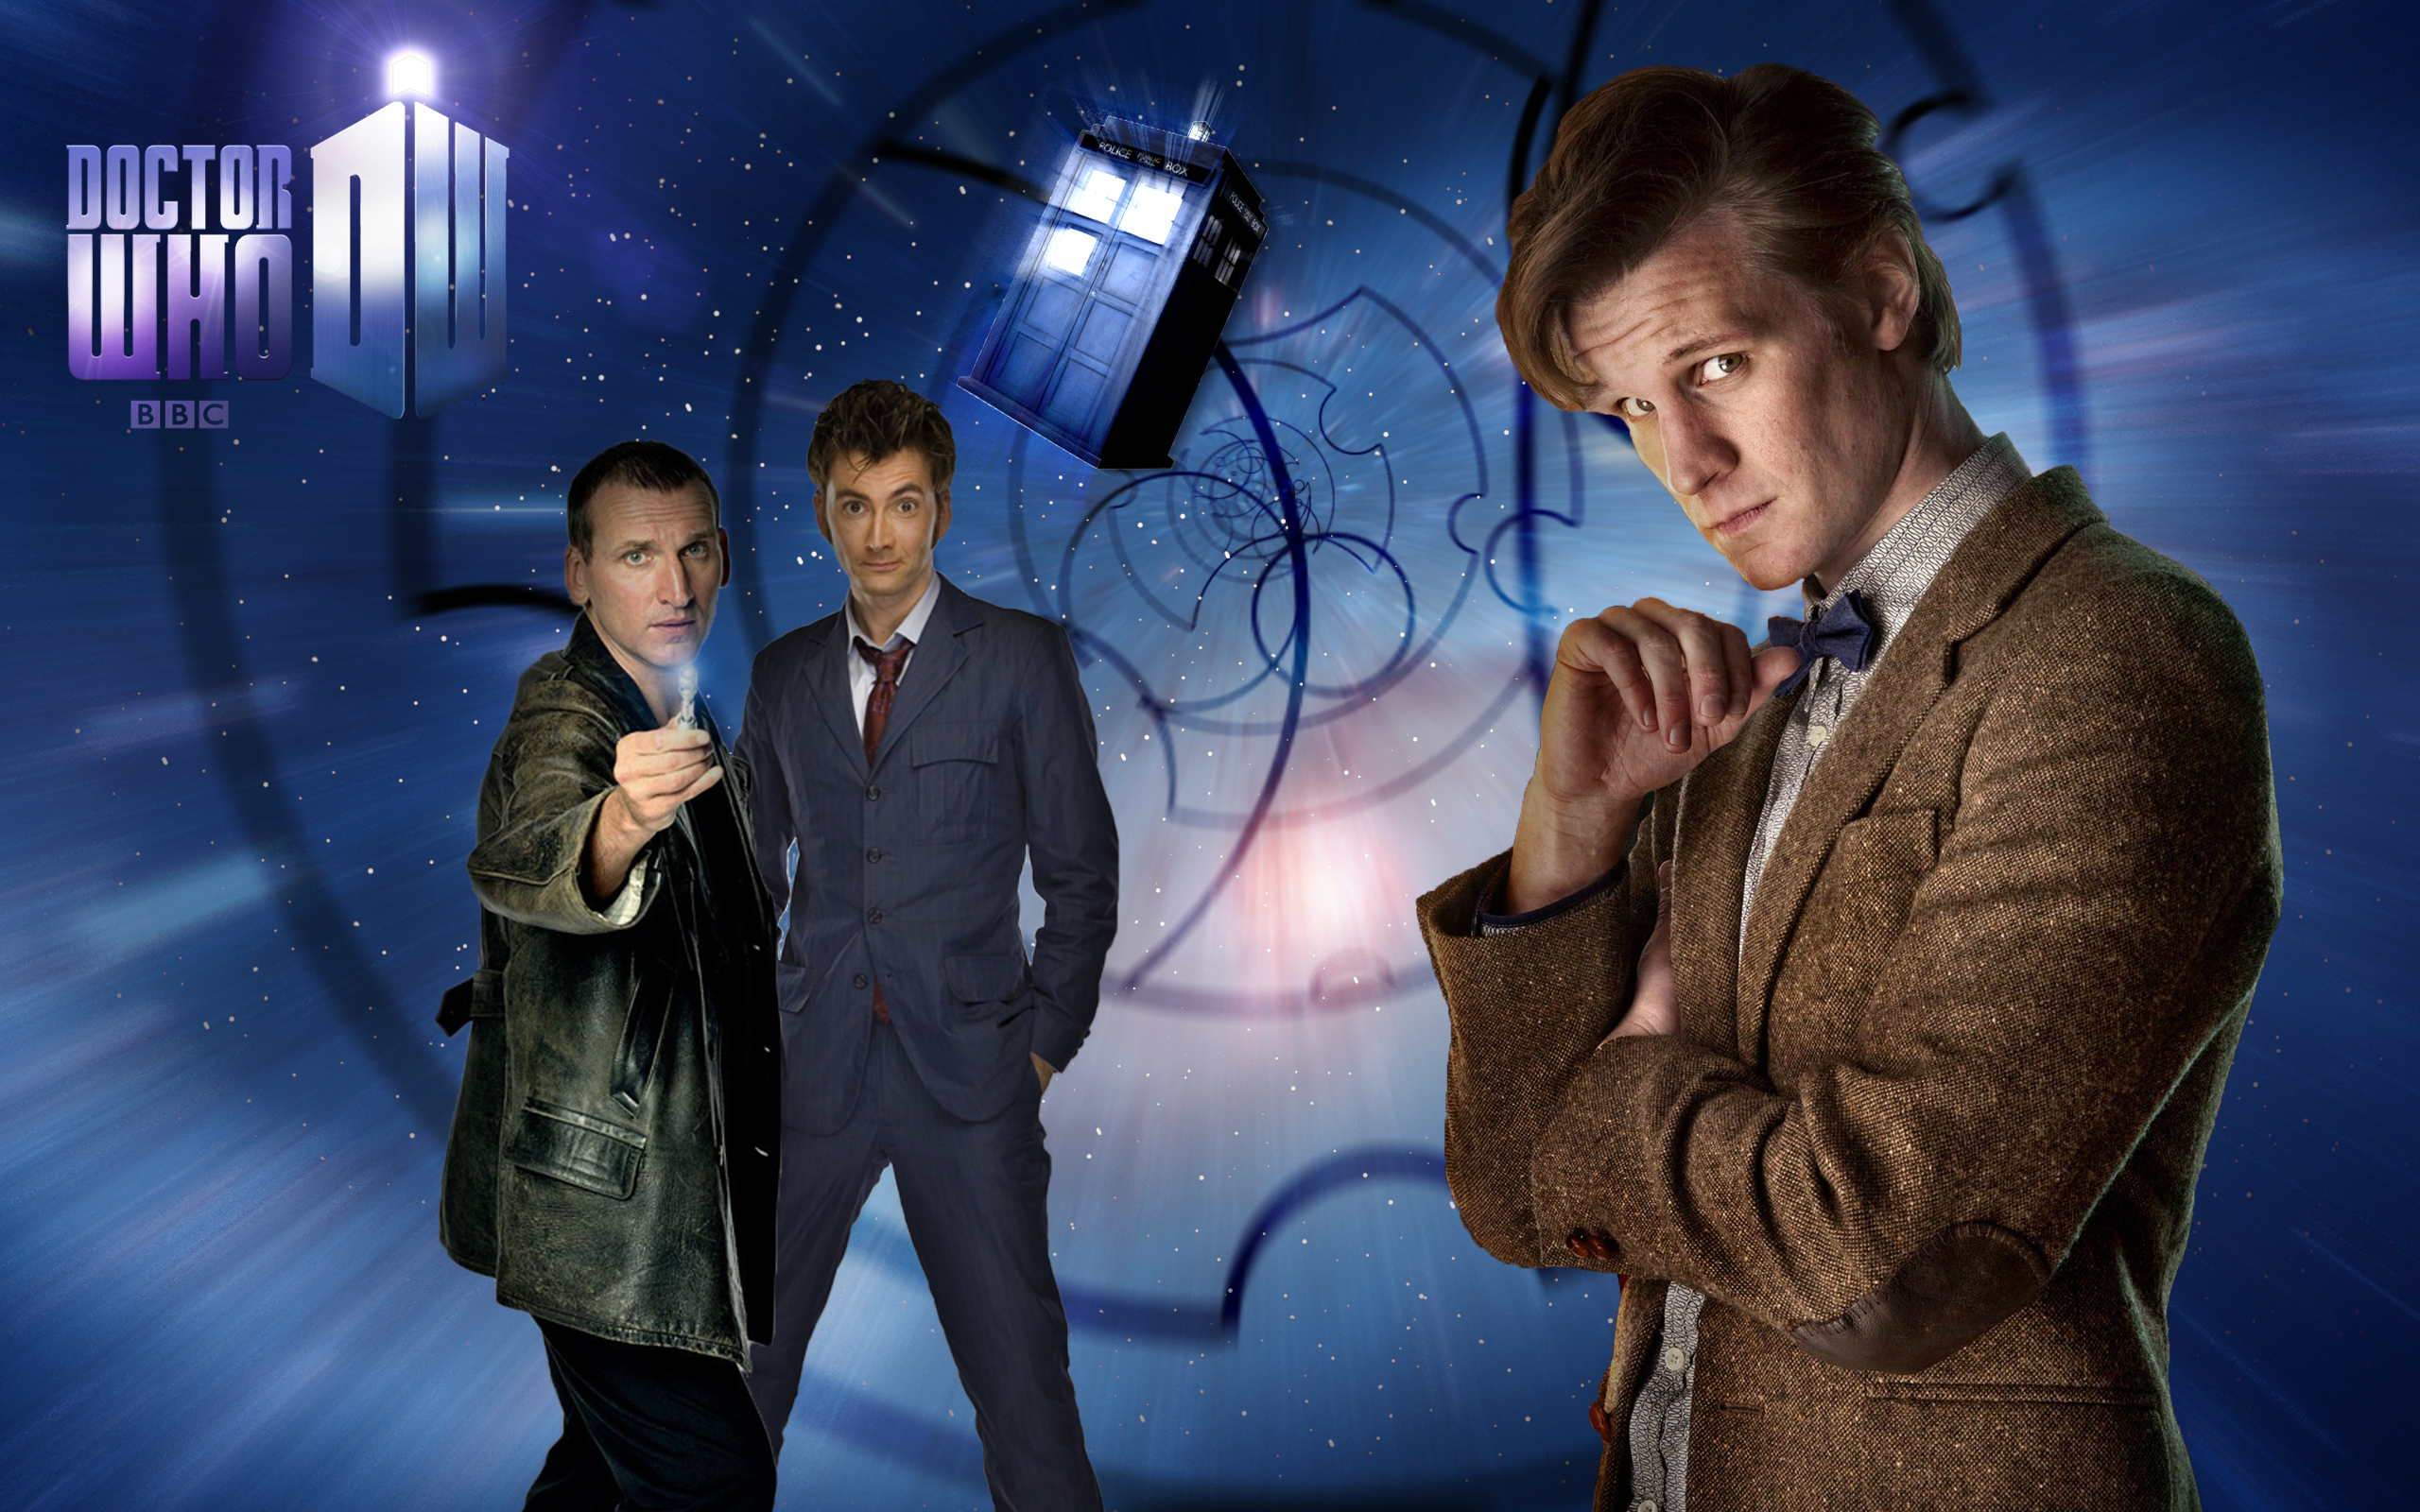 Doctor Who wallpaper 4